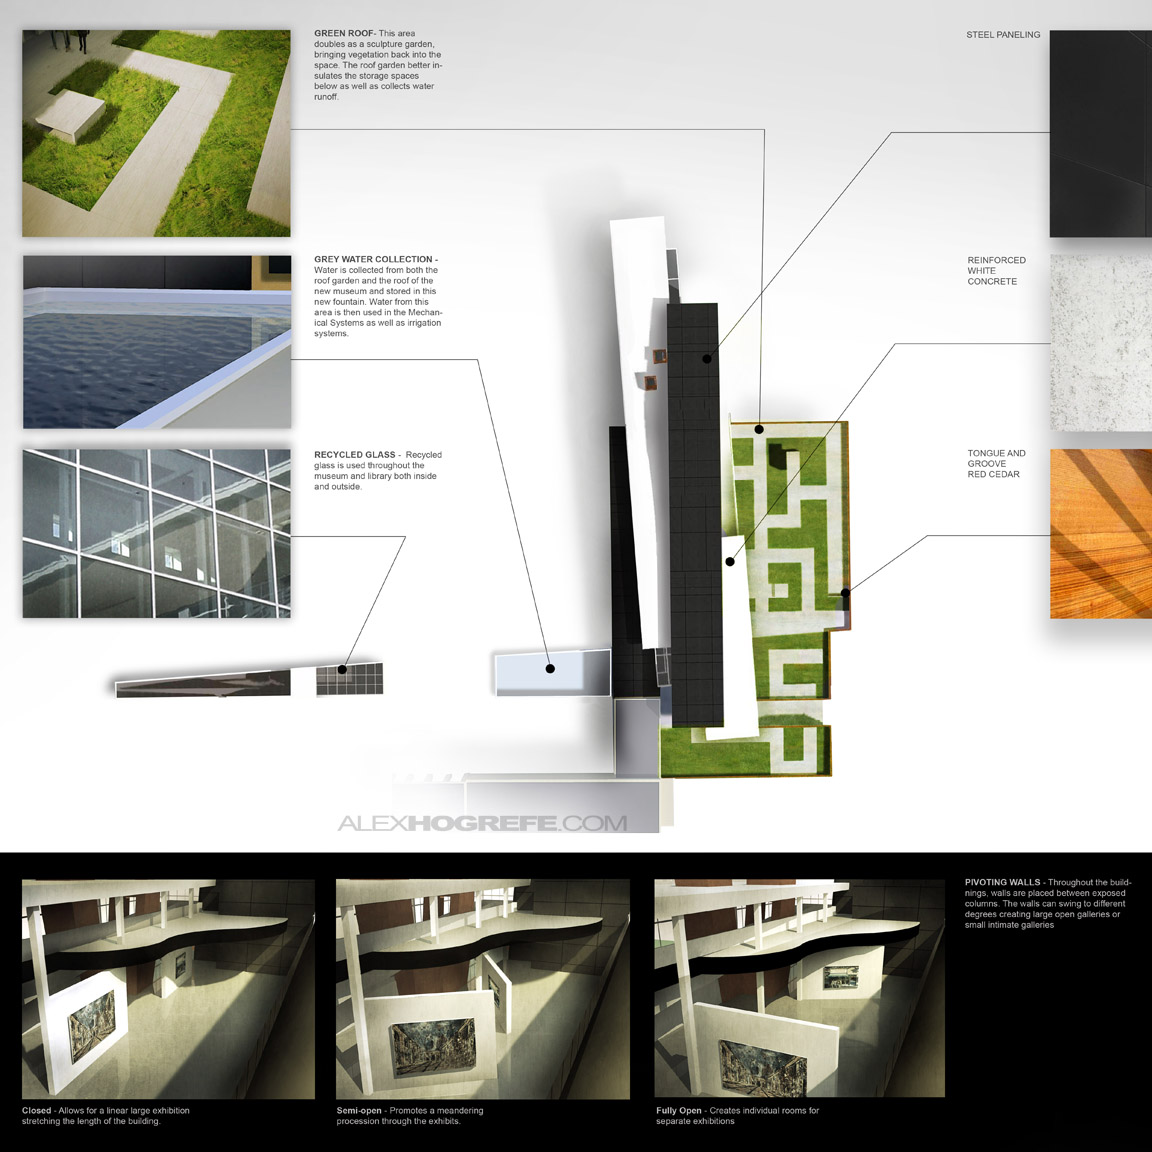 Alex_hogrefe_presentation_board_architecture_4